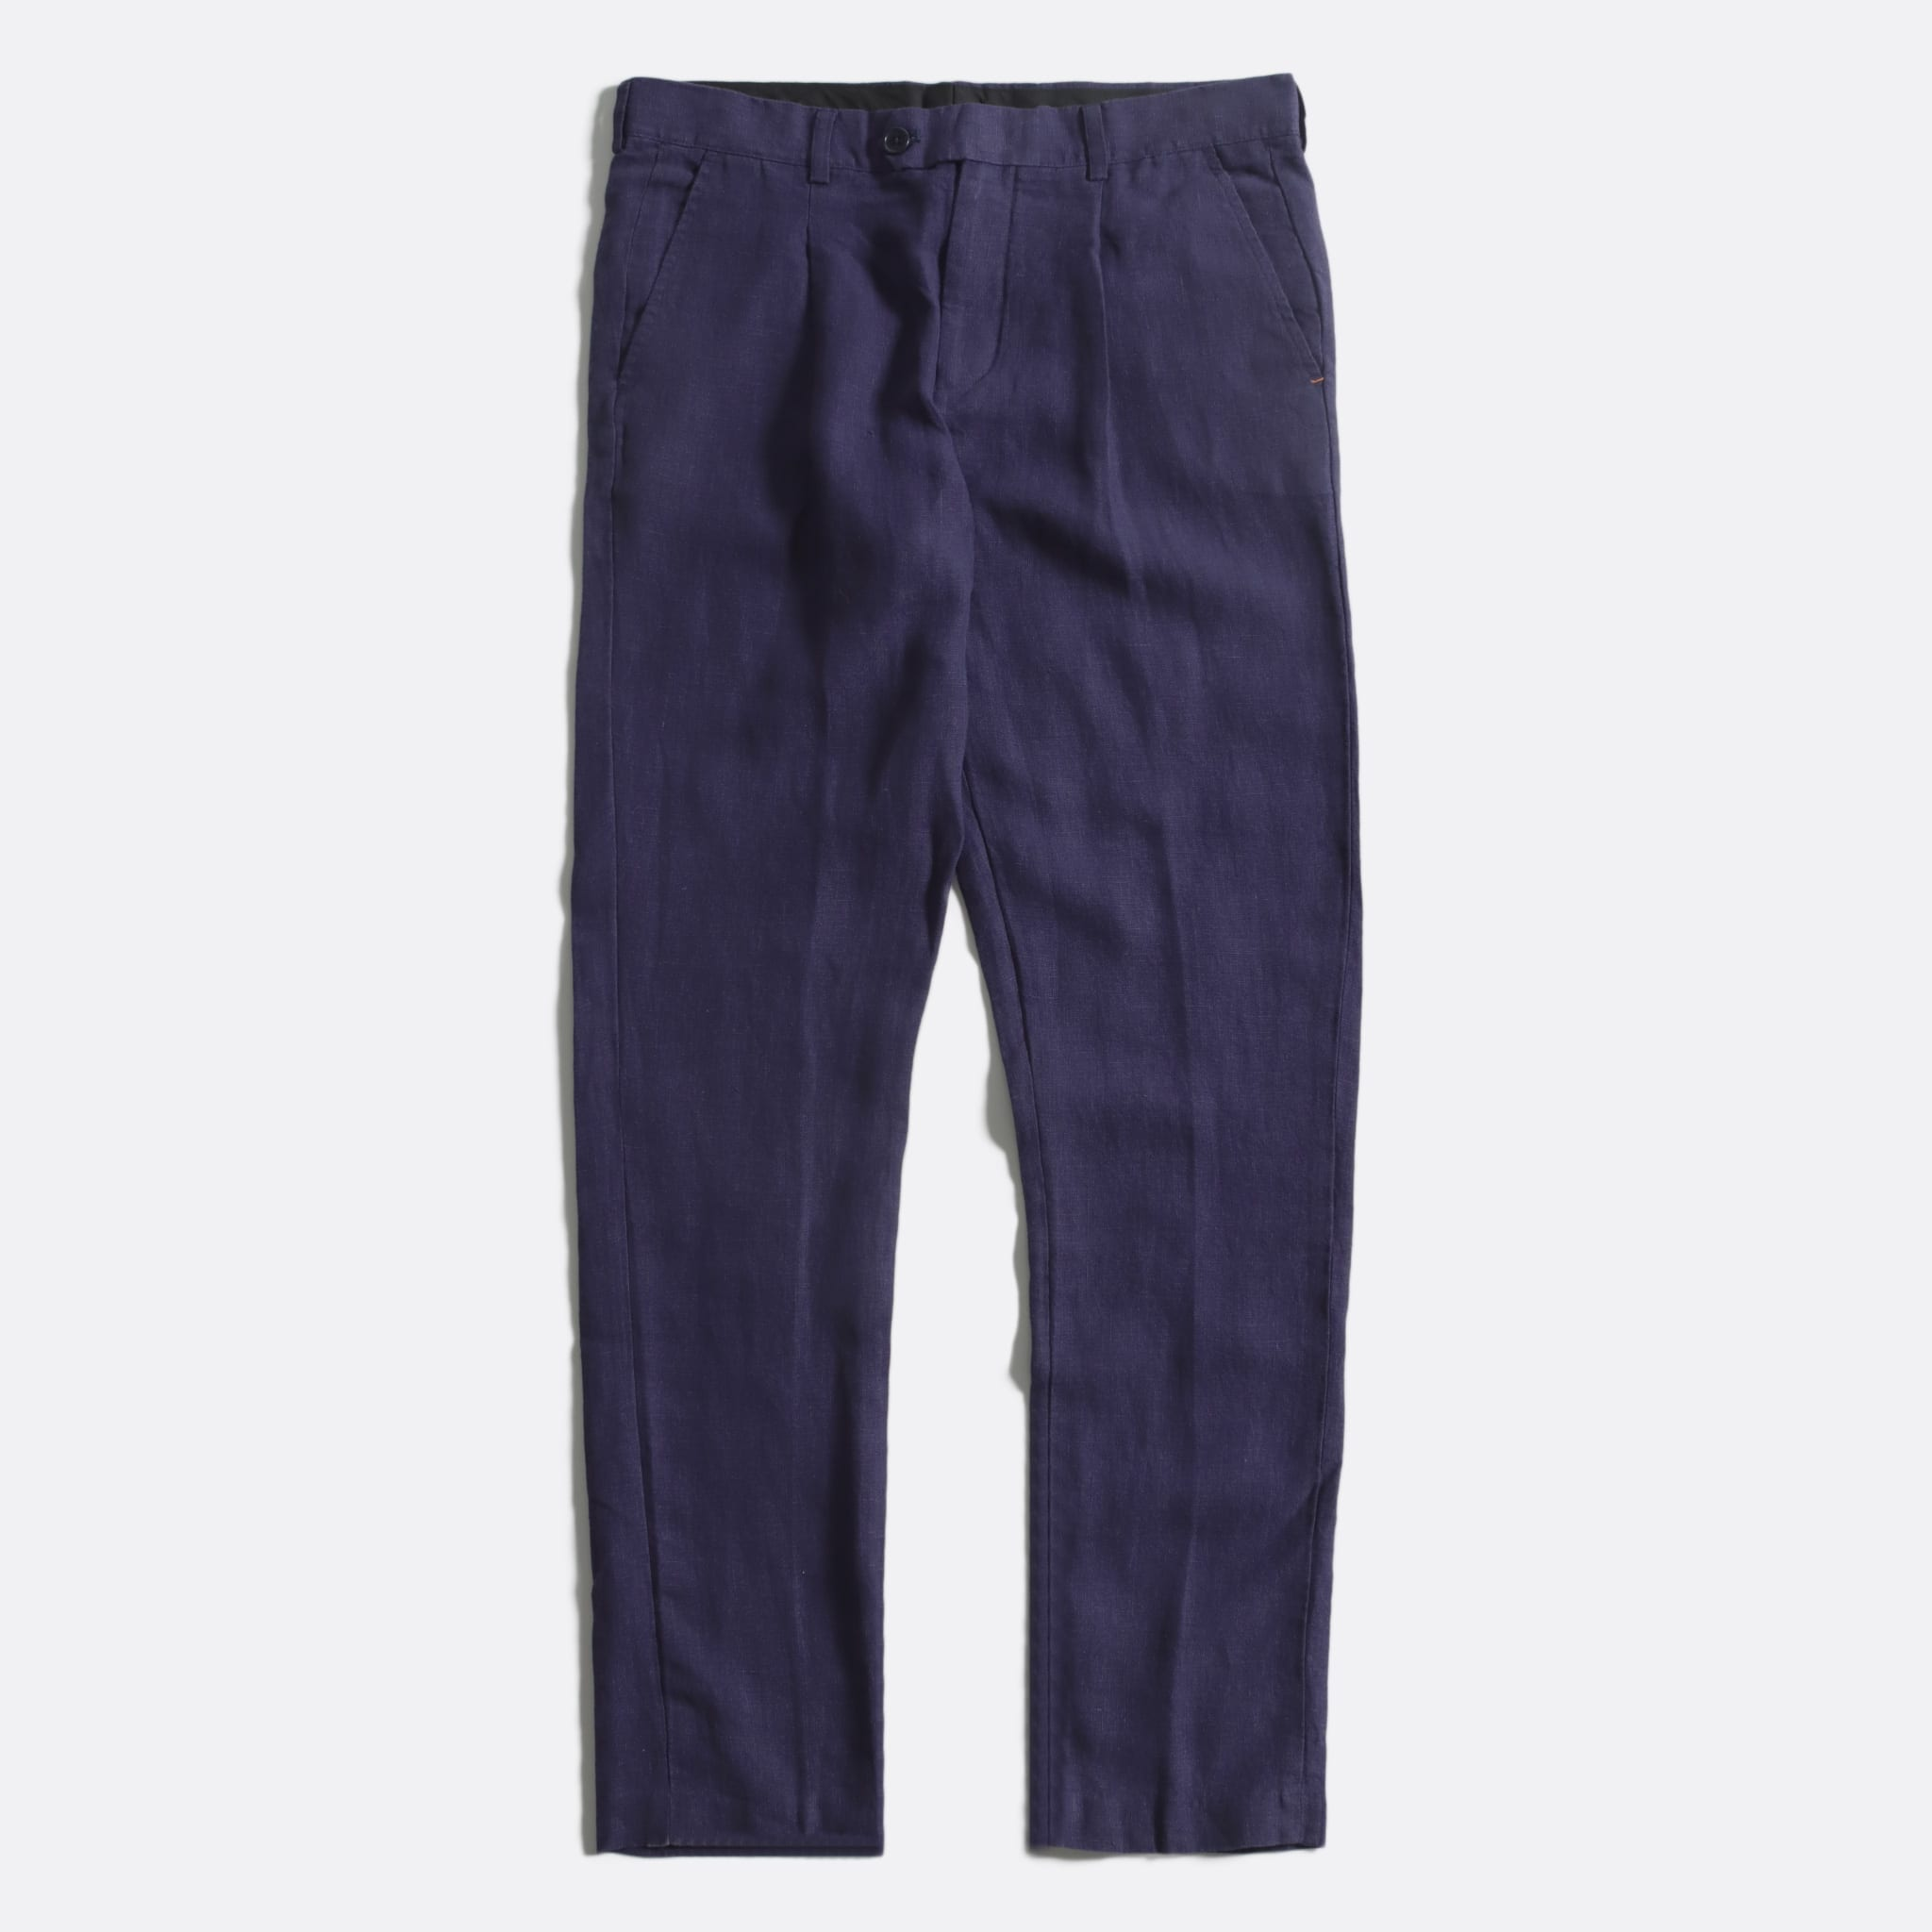 Far Afield Pleat Trousers a Blue Linen Fabric Smart Casual